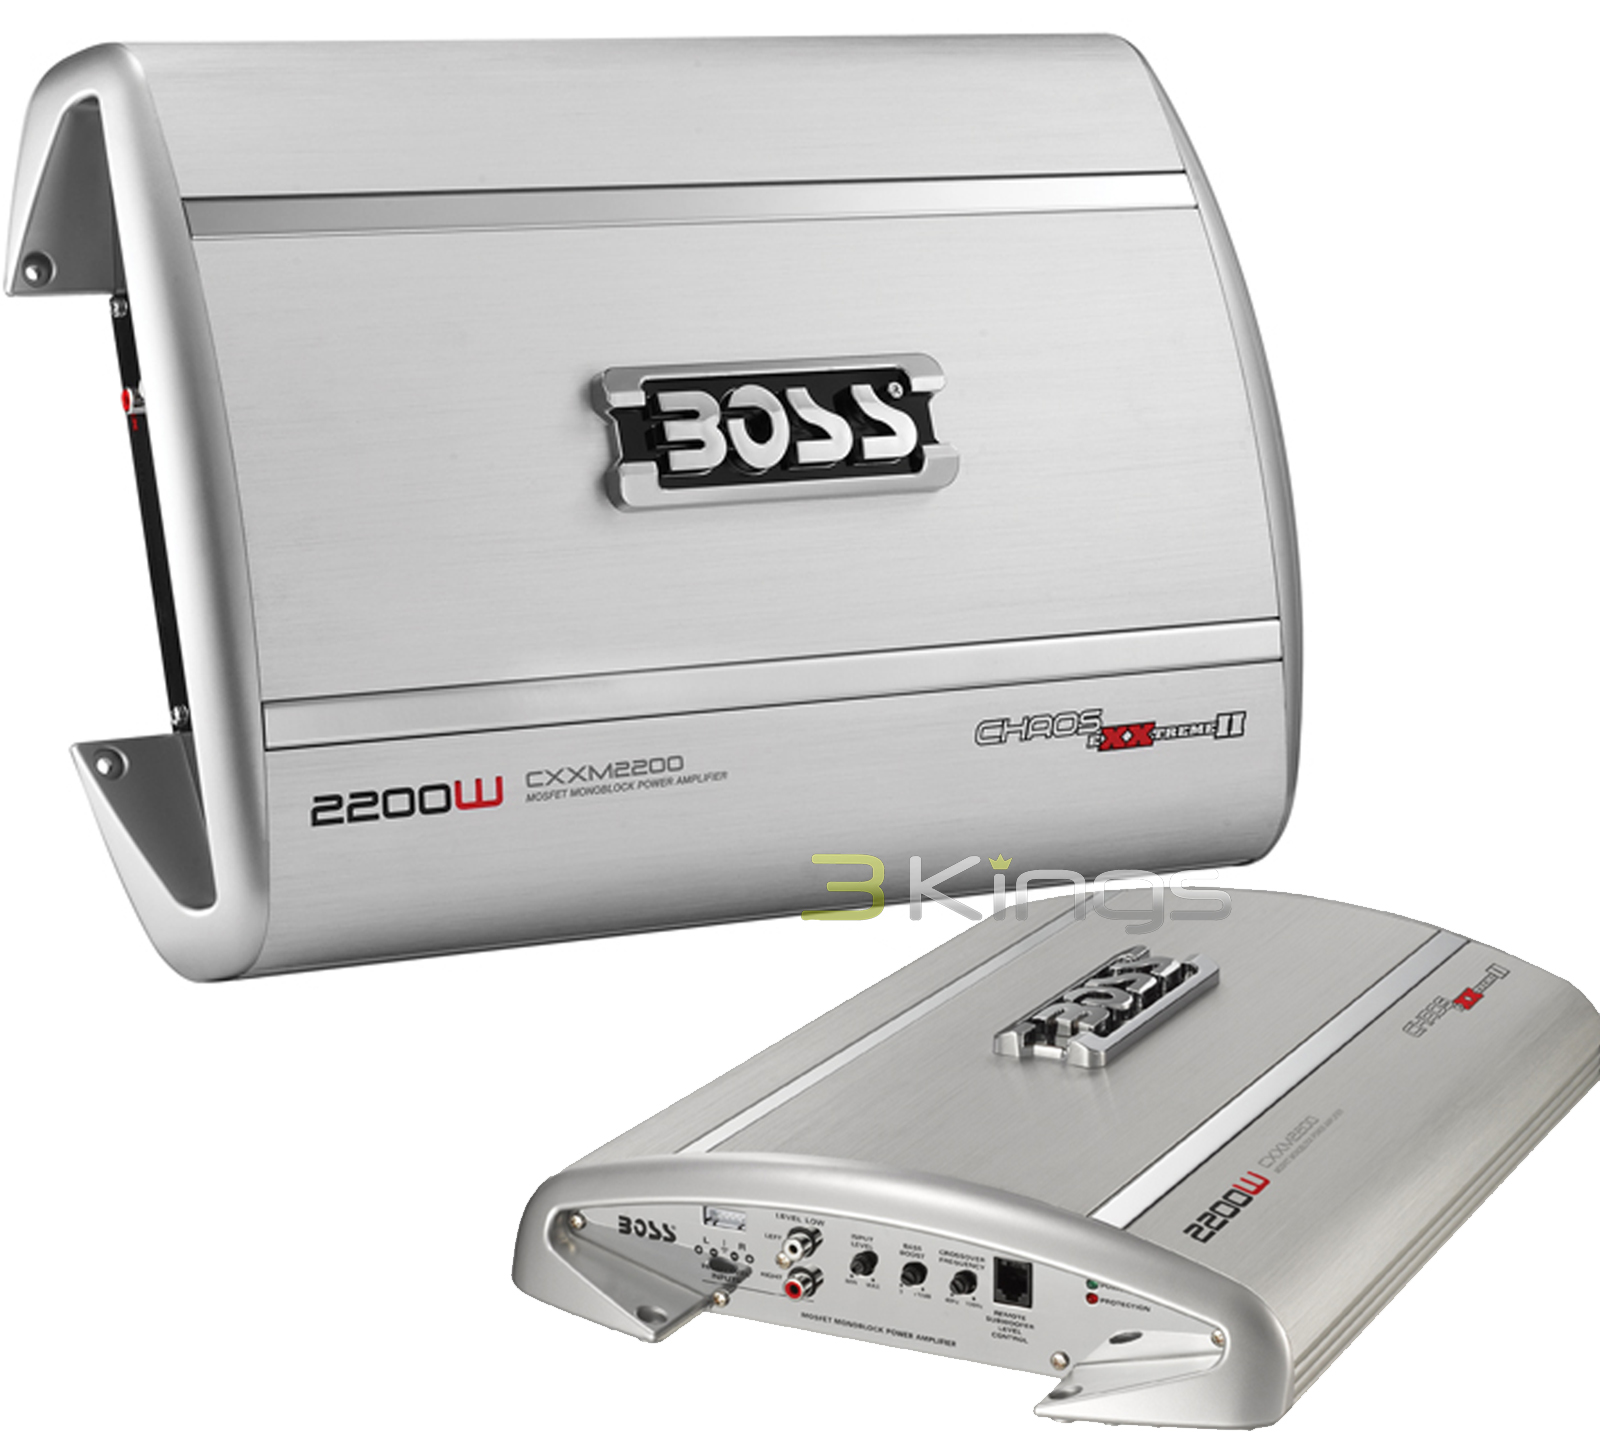 Buy BOSS Amplifiers - NEW BOSS CXXM2200 2200W MONOBLOCK AMPLIFIER AMP 2200